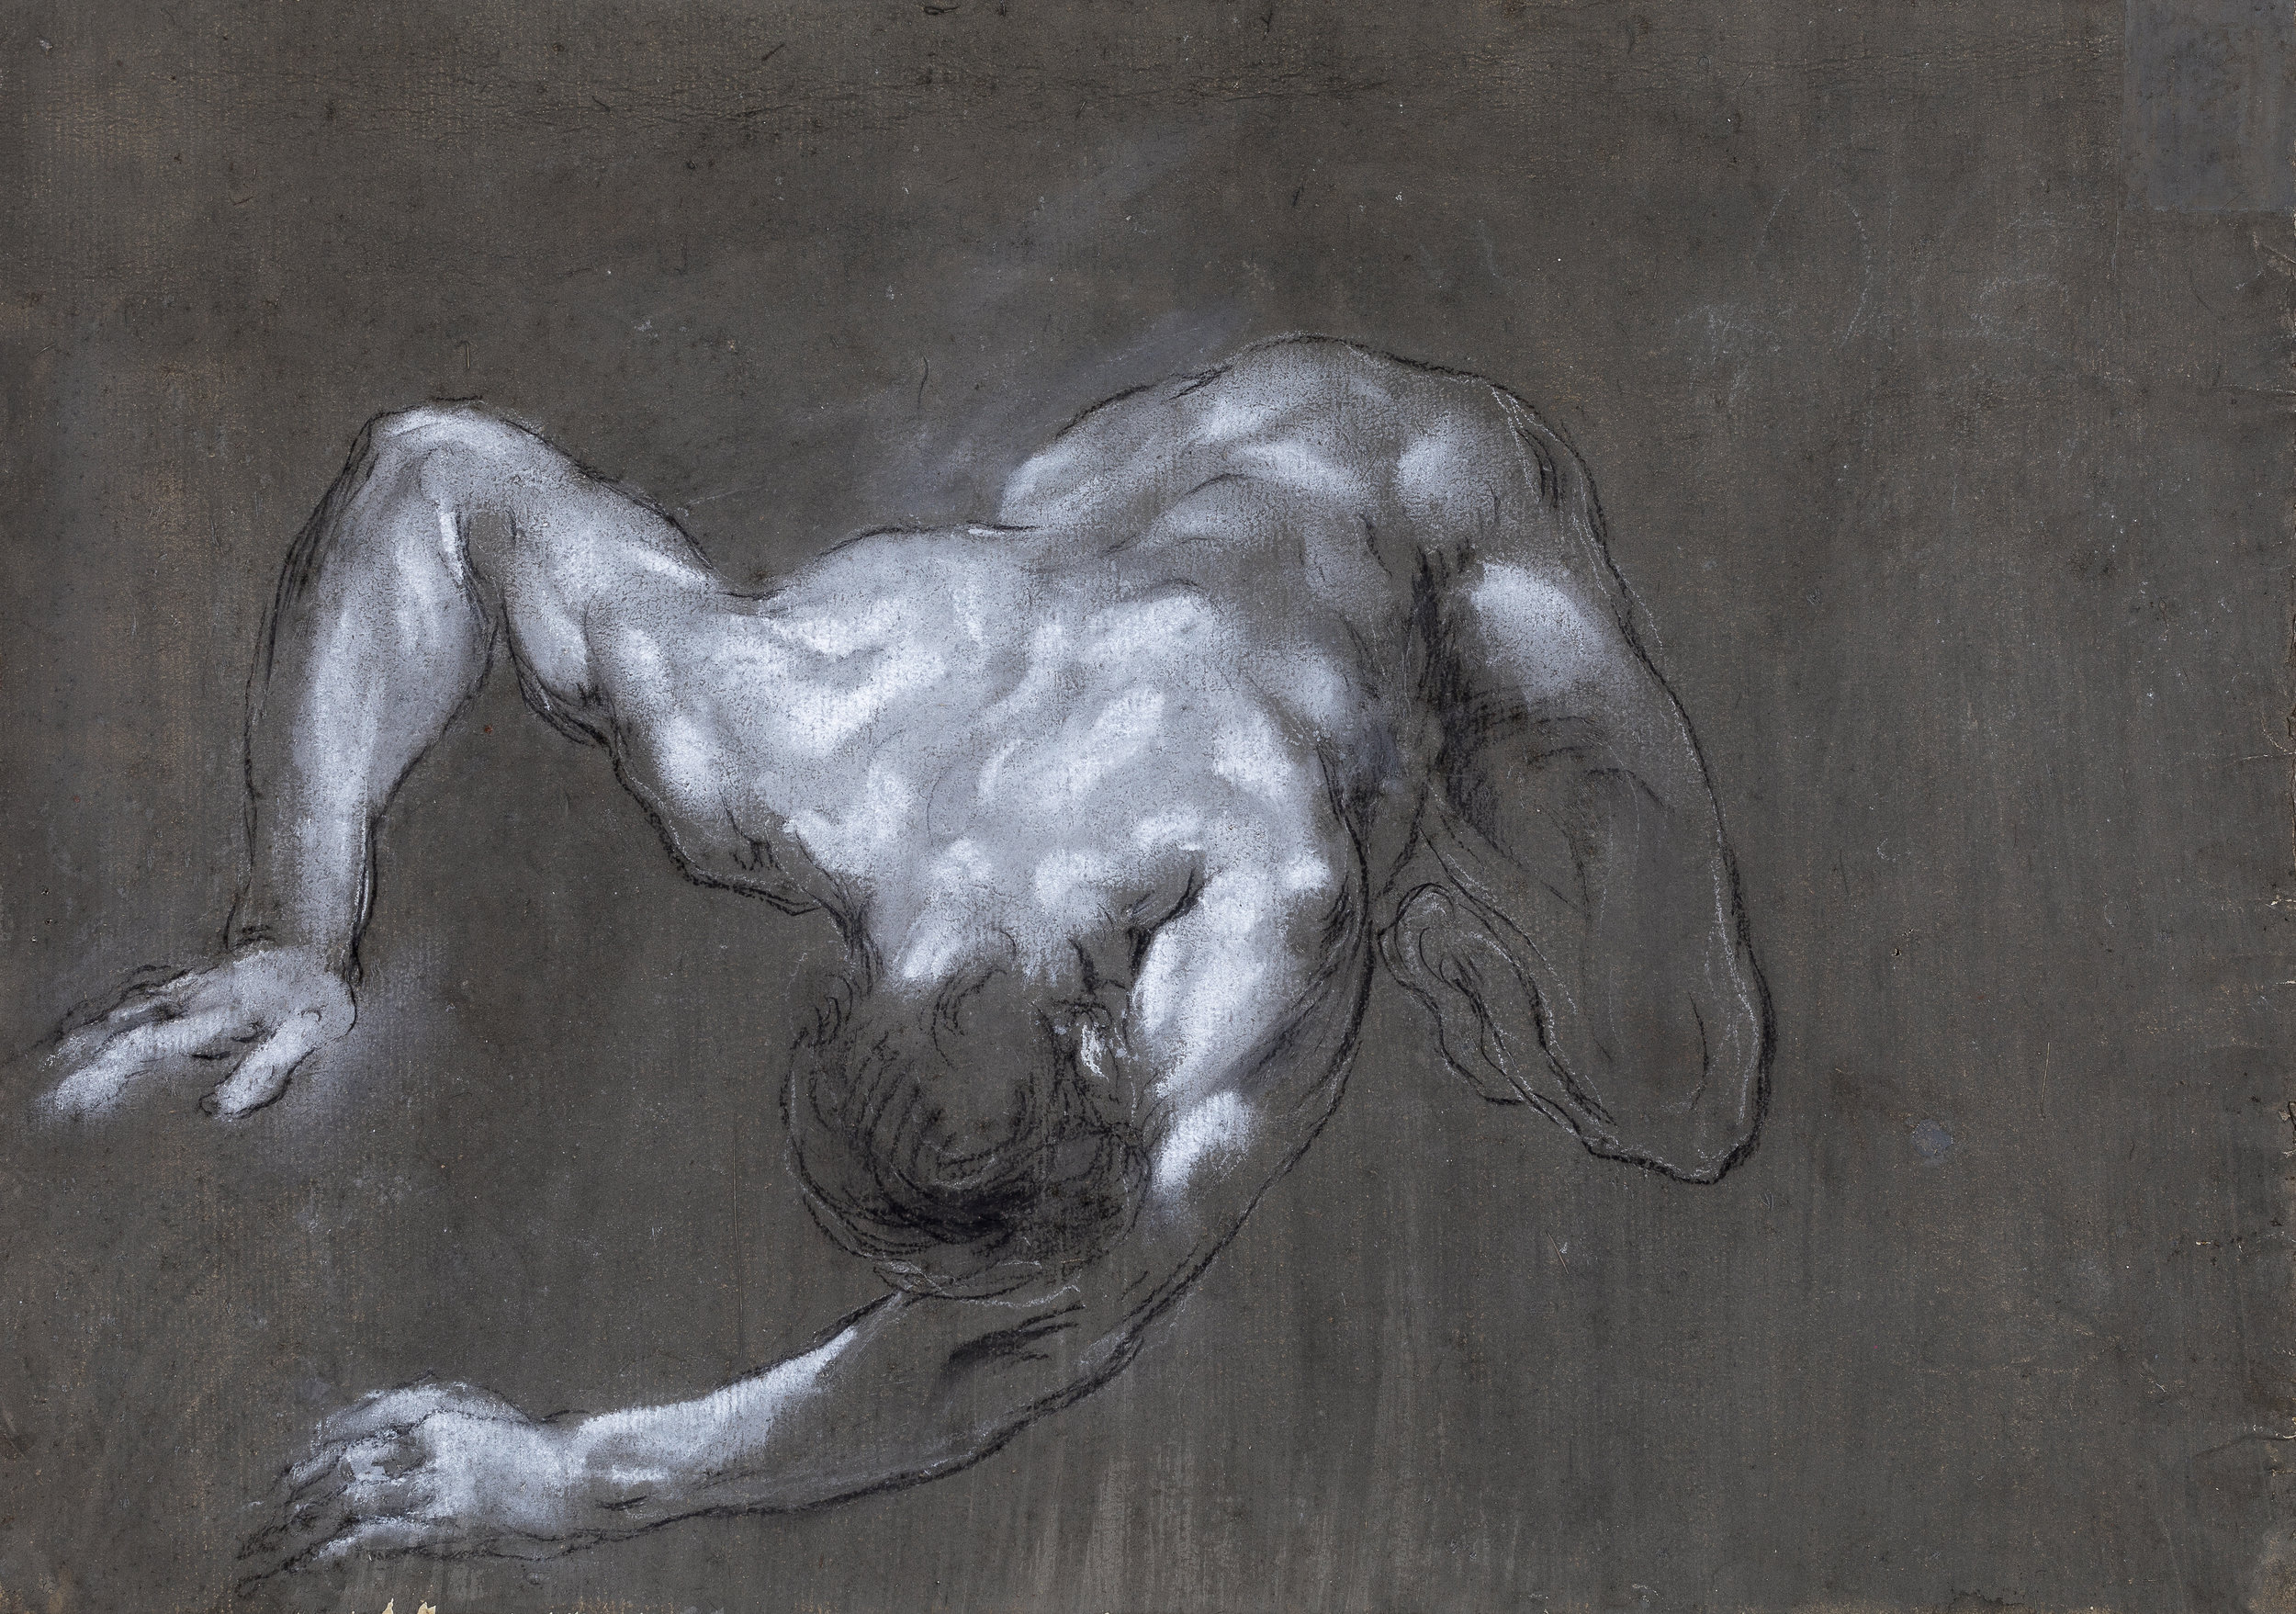 Francesco Monti  (b. 1685)  A Crouching Man, Seen from Above (recto)  11 1/16 x 15 ¾ in. black and white chalk on dark-grey prepared paper